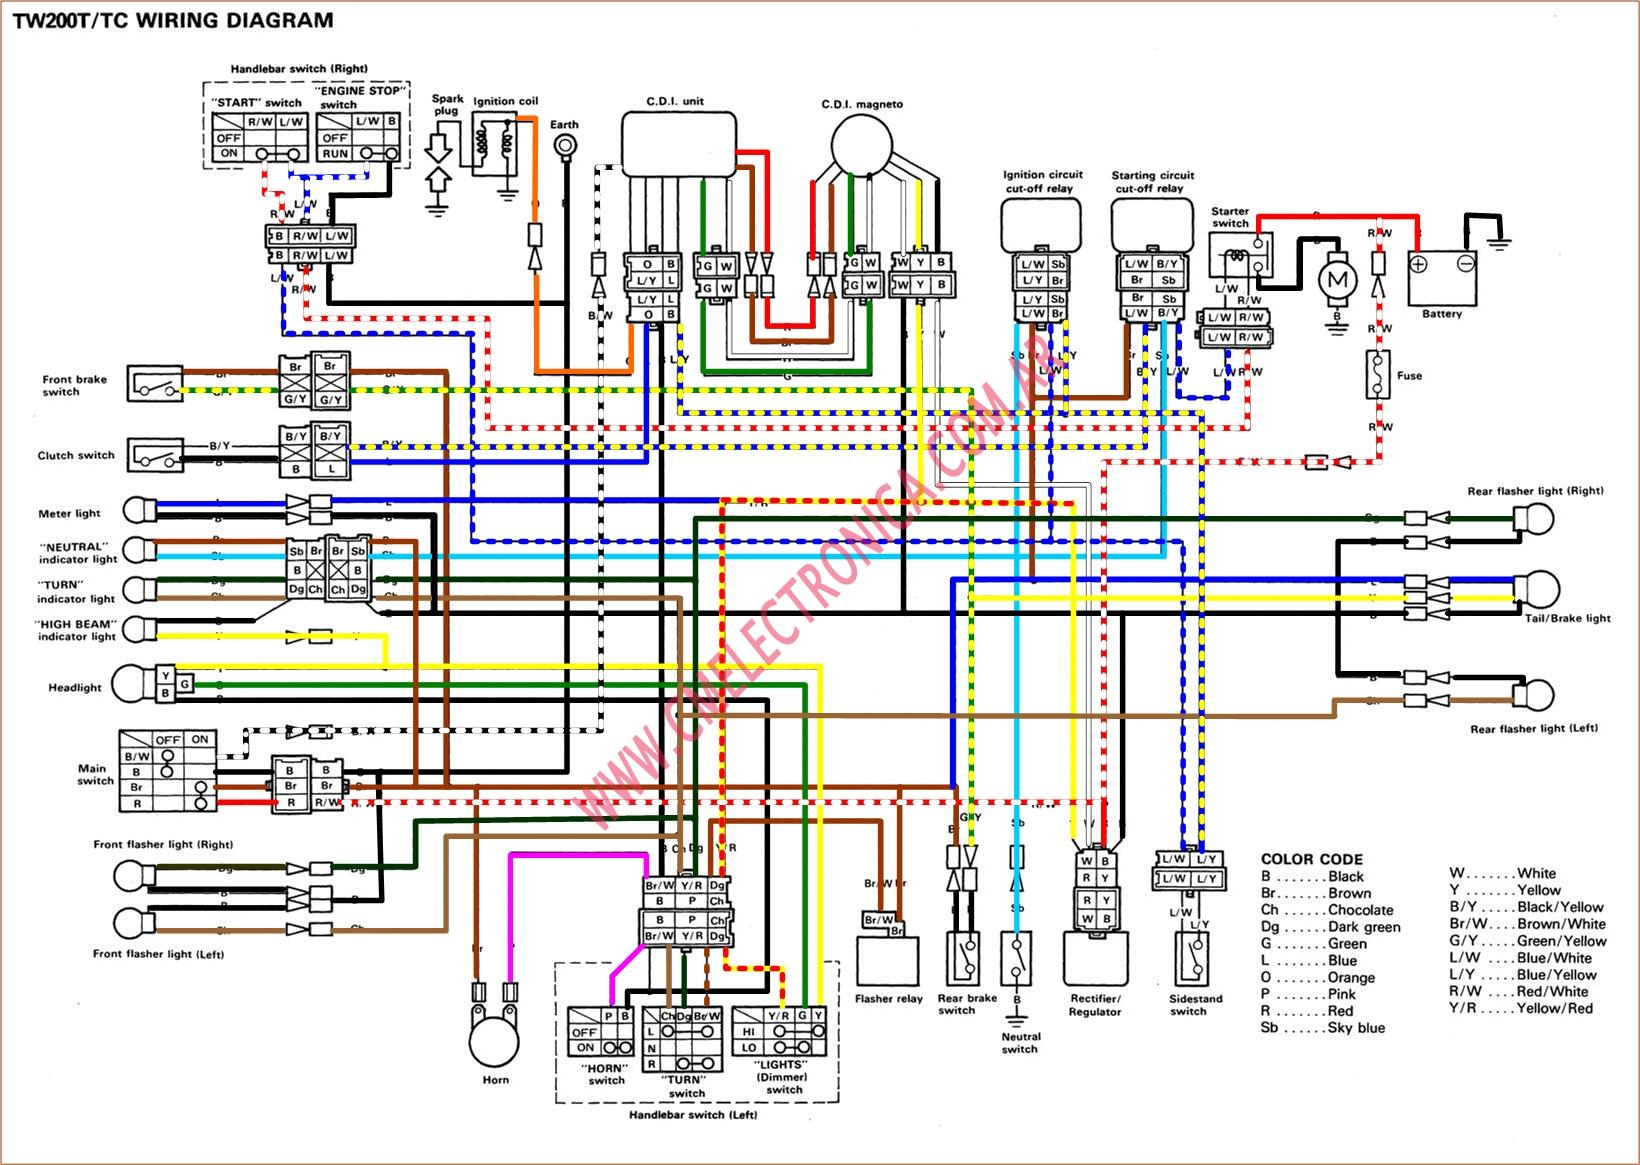 660 raptor cdi wiring diagram yamaha ttr 125 engine diagram yamaha wiring diagrams